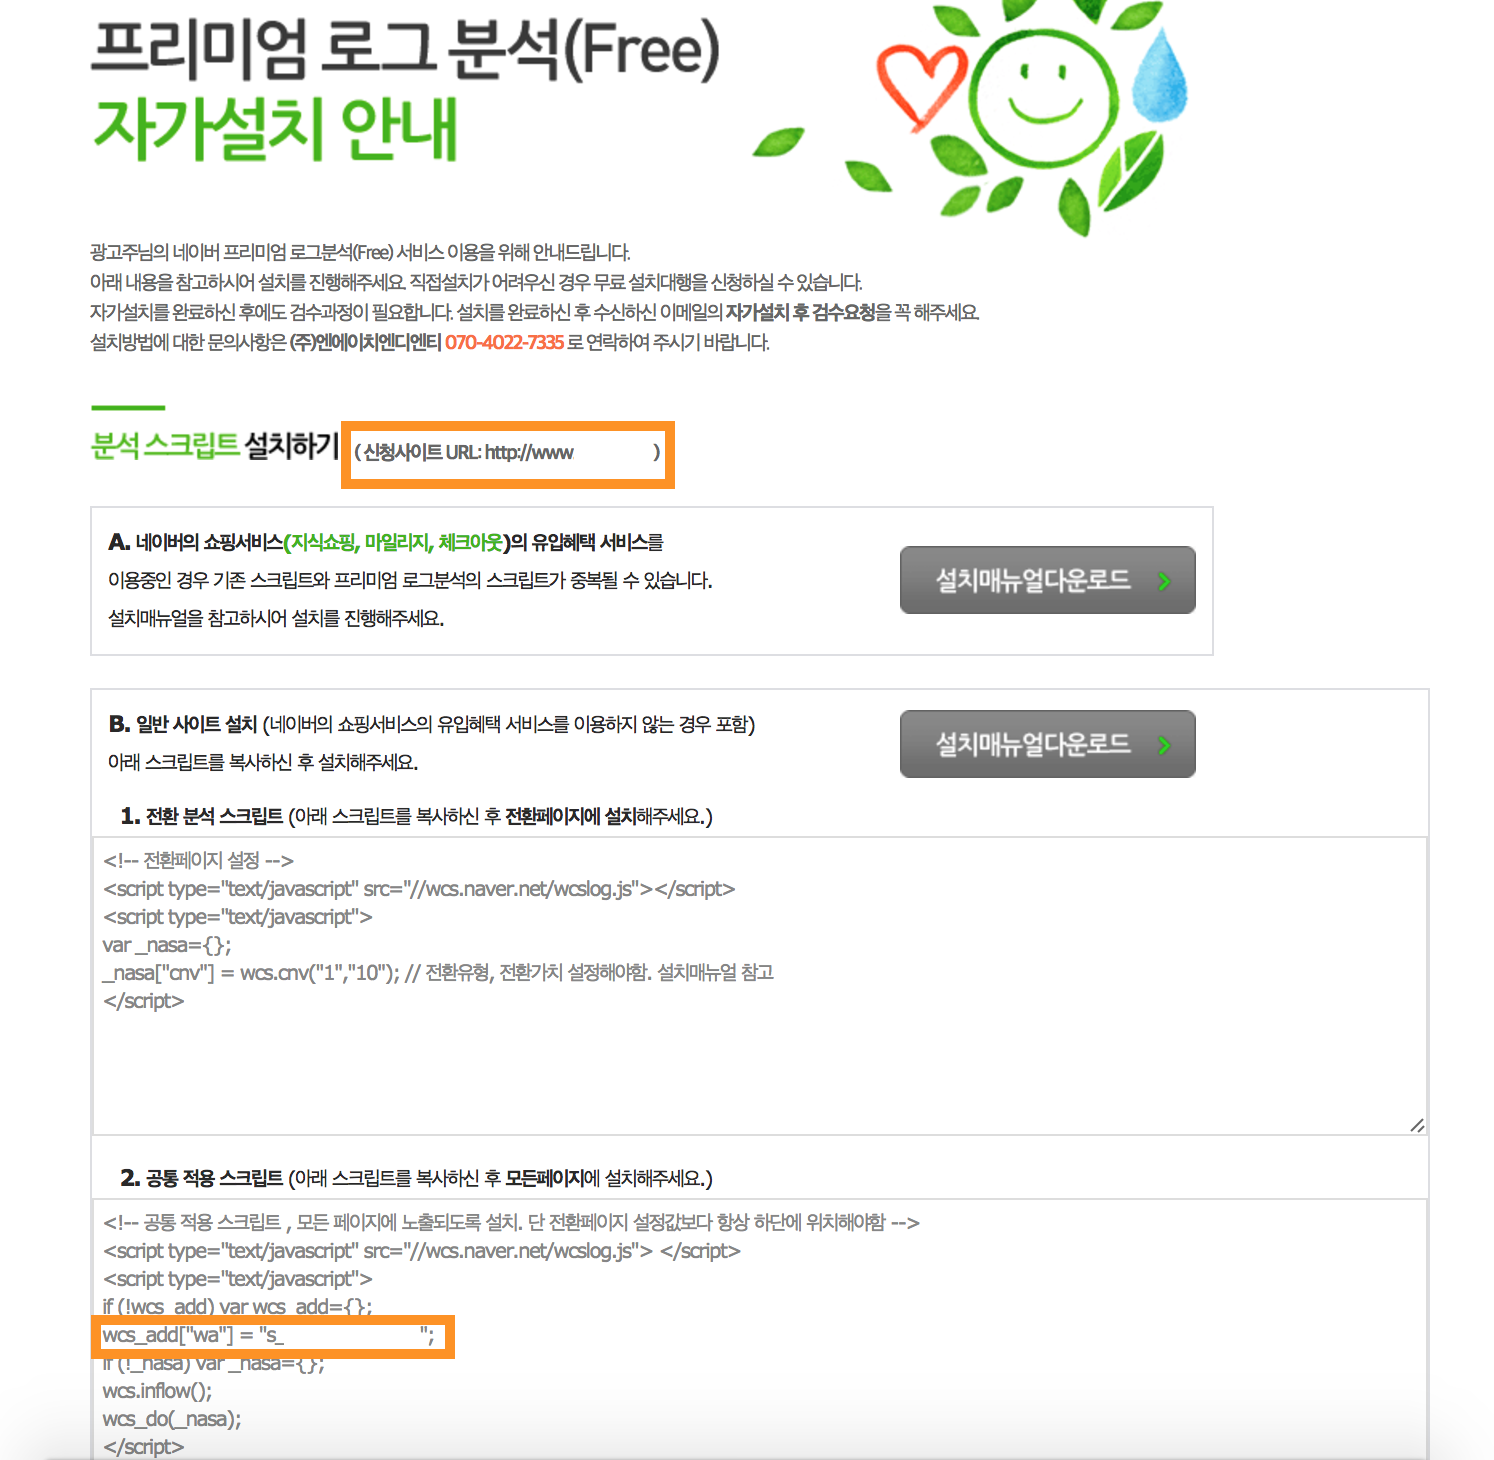 codemshop-wordepress-mysite-naver-5